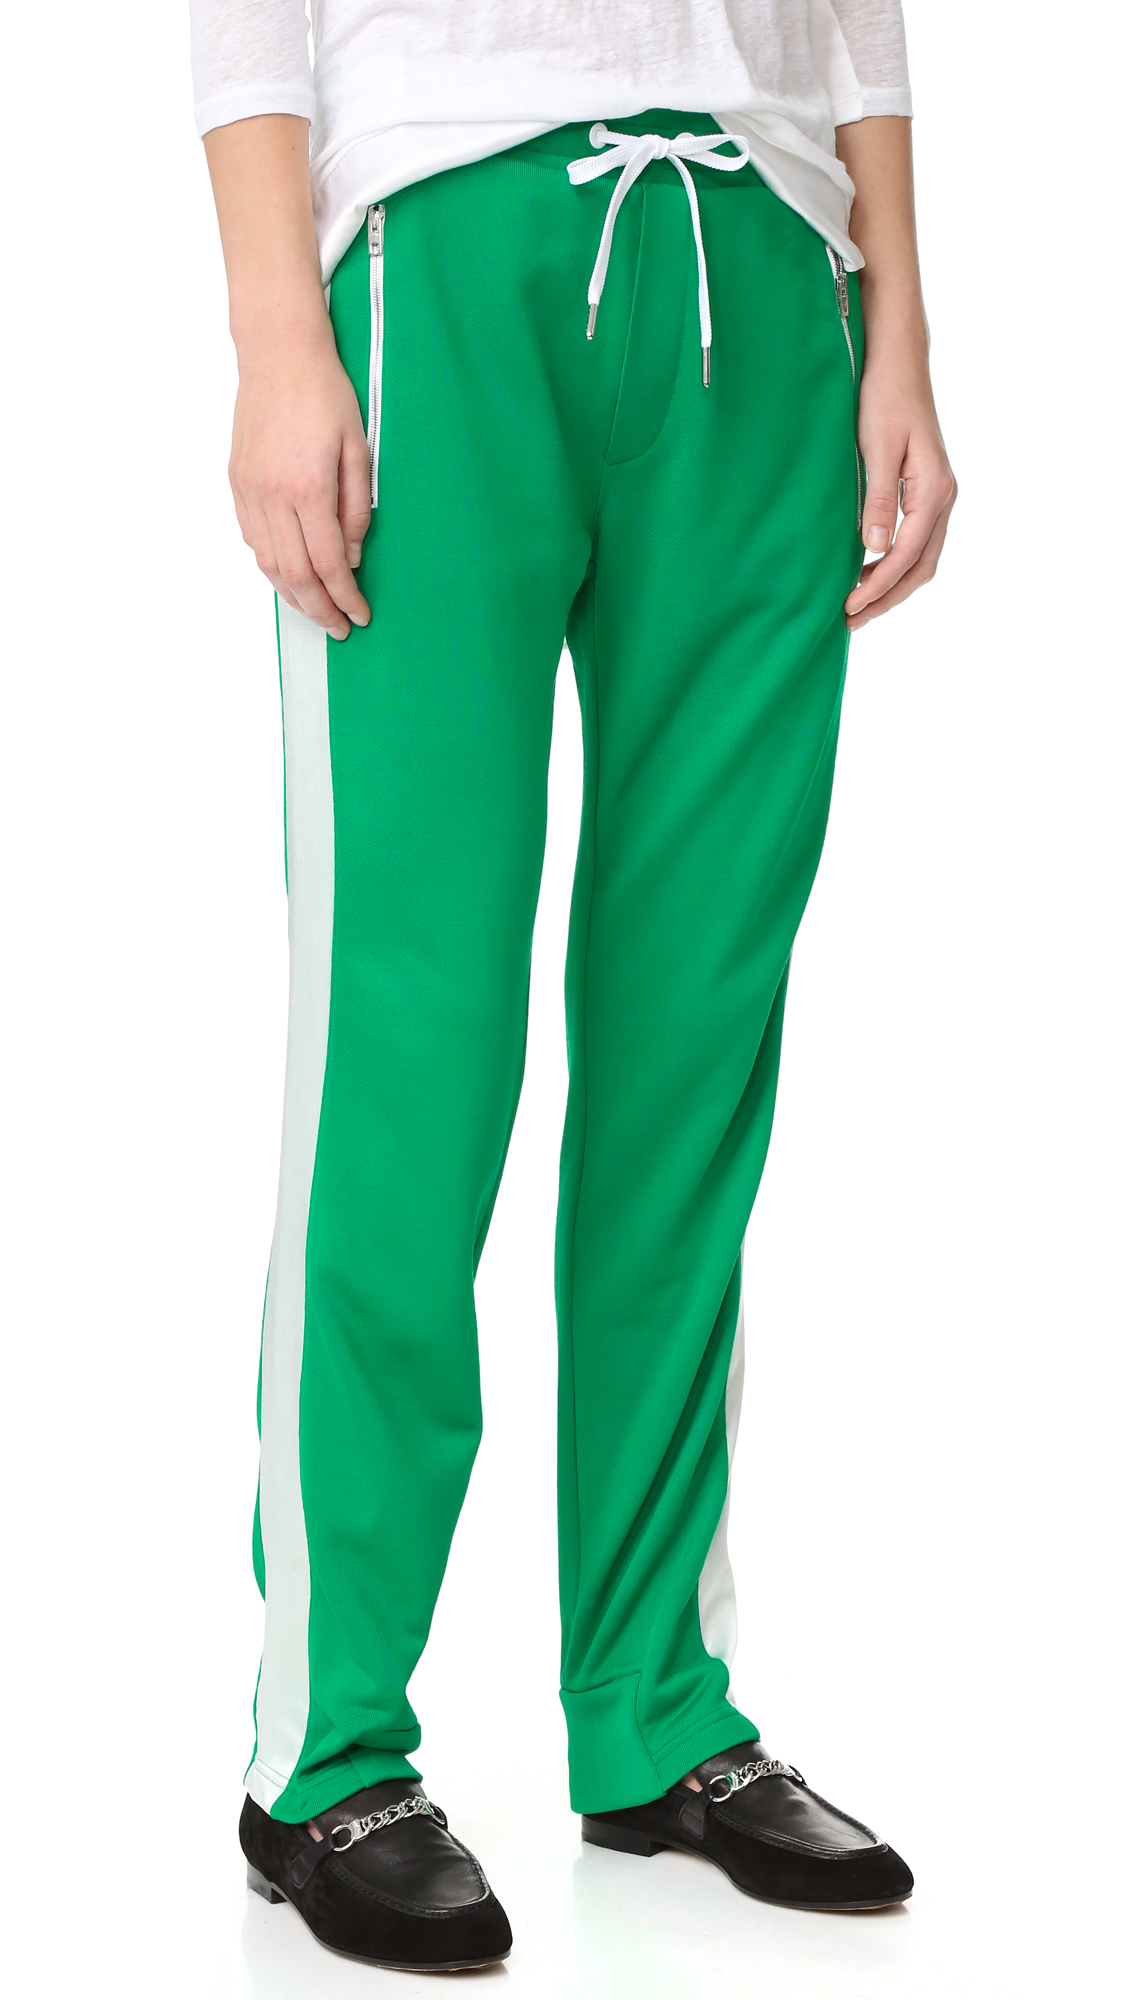 Sporty Rag & Bone track pants, styled with lustrous satin side stripes and zipper pockets. Covered elastic waistband with drawstring. Faux fly. Fabric: French terry. Shell: 59% polyester/41% cotton. Trim 1: 100% silk. Trim 2: 95% polyester/5% spandex. Wash cold. Made in